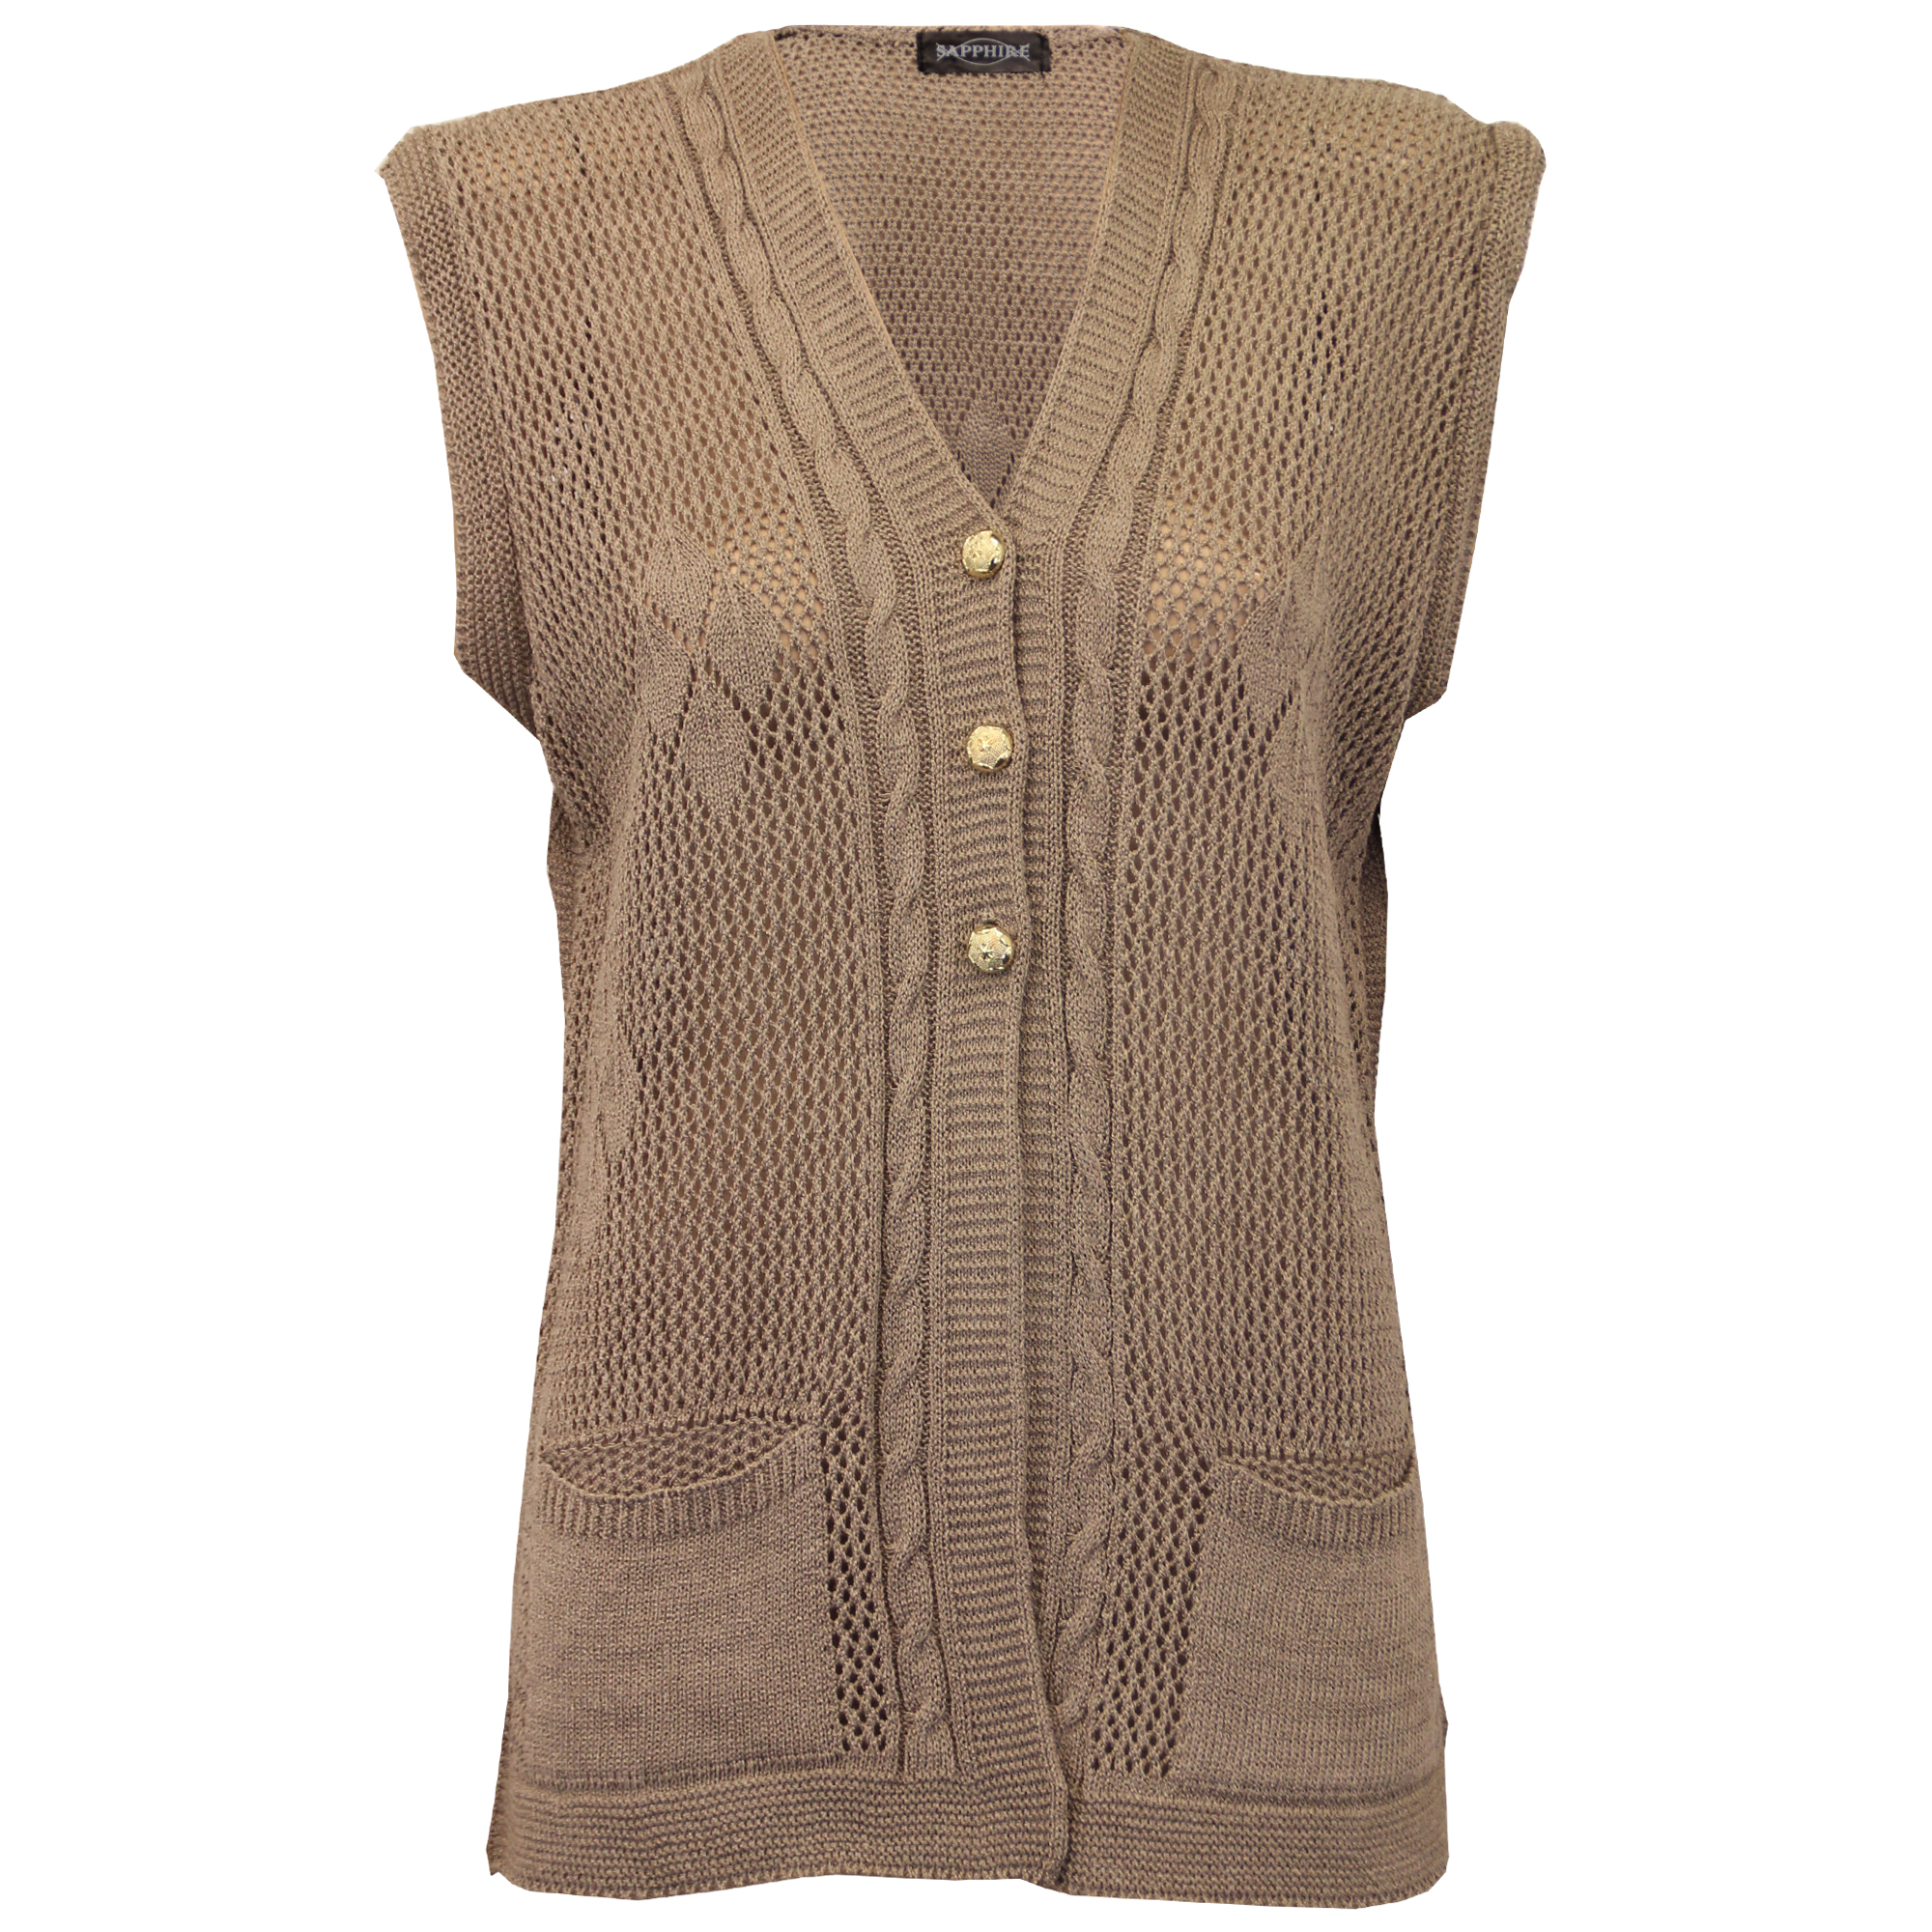 Ladies Cardigans Womens Gilet Knitted Crochet Waistcoat Sleeveless Casual Win...